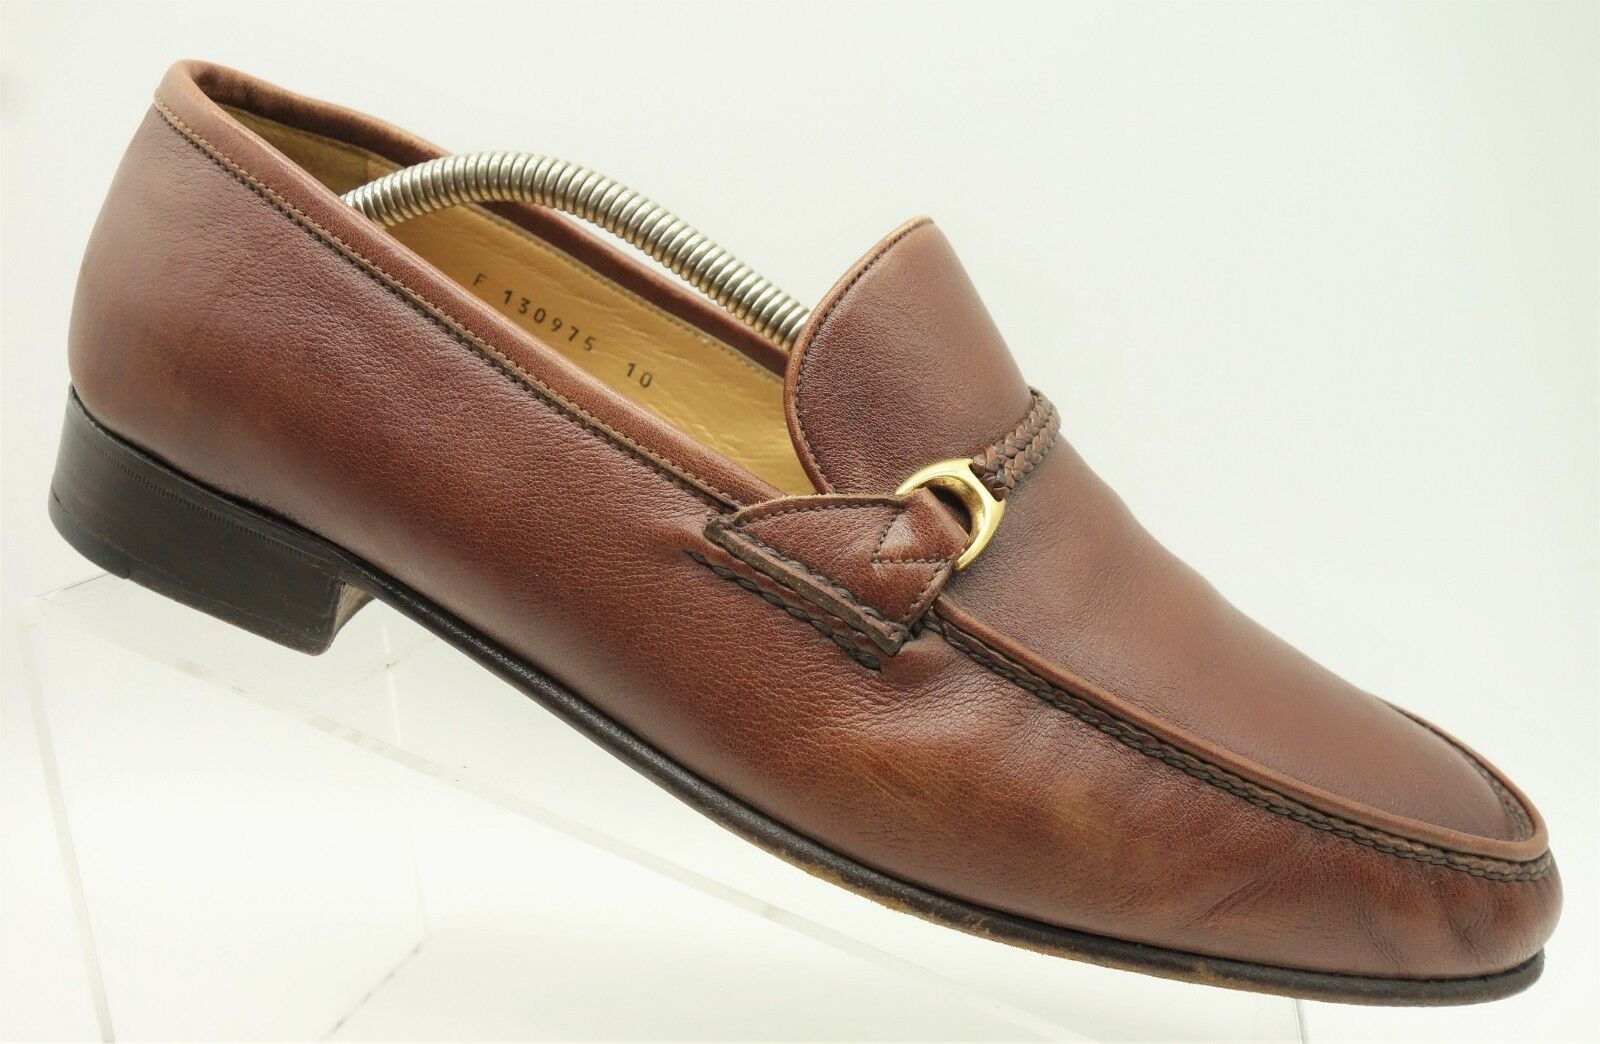 Tanino Crisci  Brown Leather Slip On Casual Loafers shoes Men's 10 M